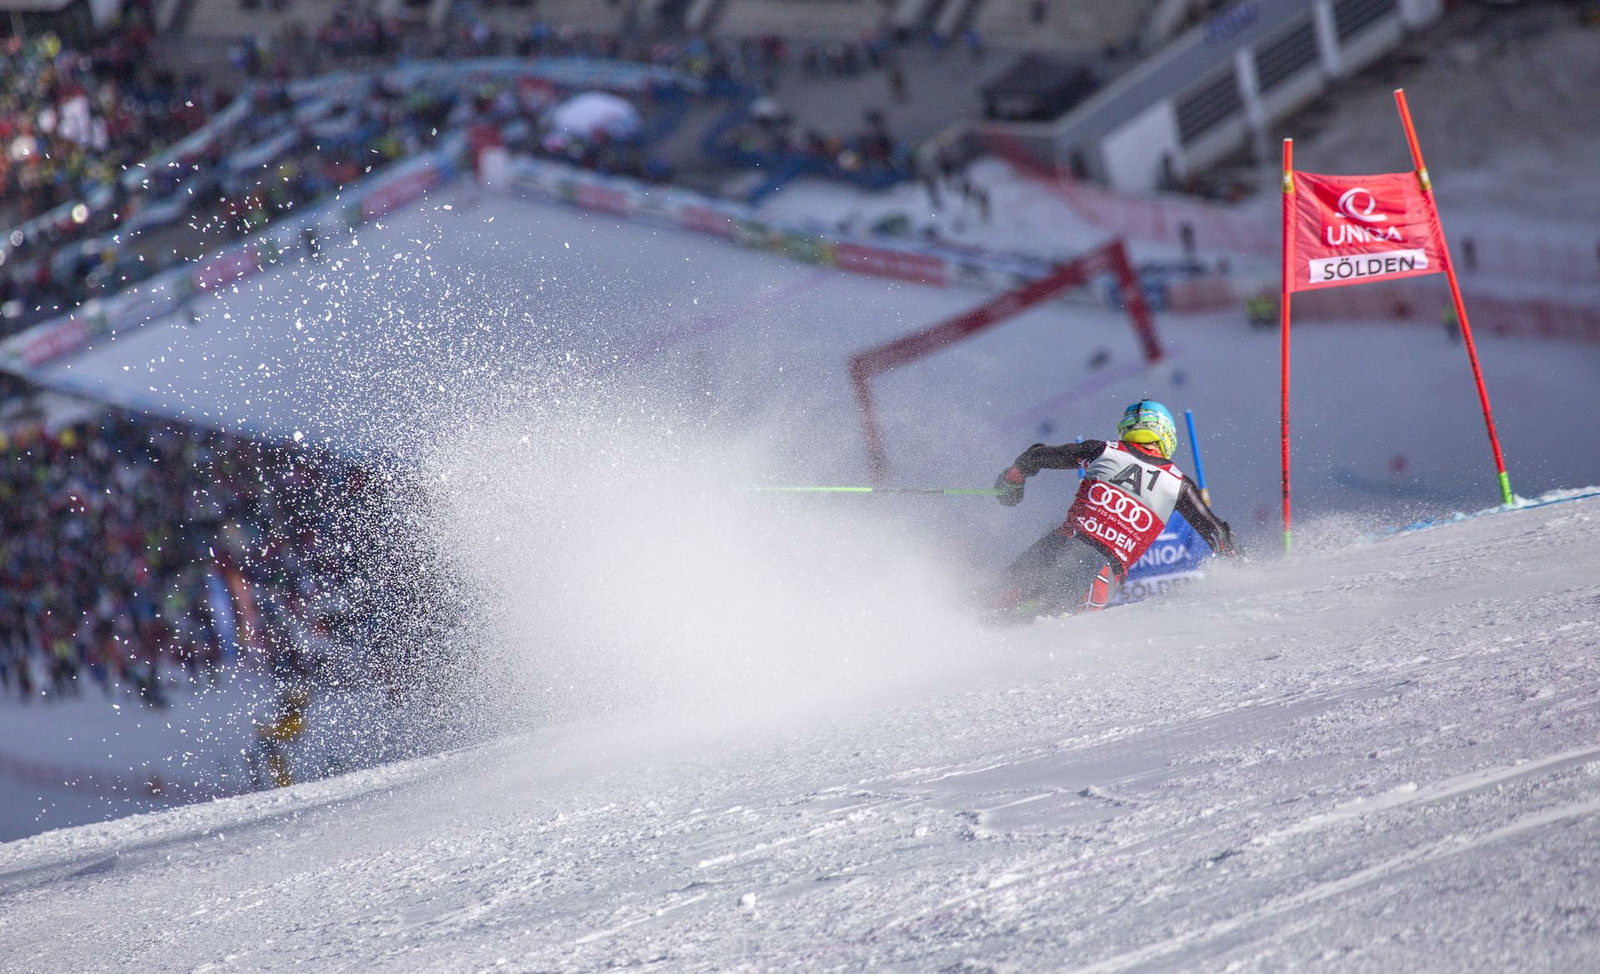 Gut builds big 1st-run lead in season-opening giant slalom